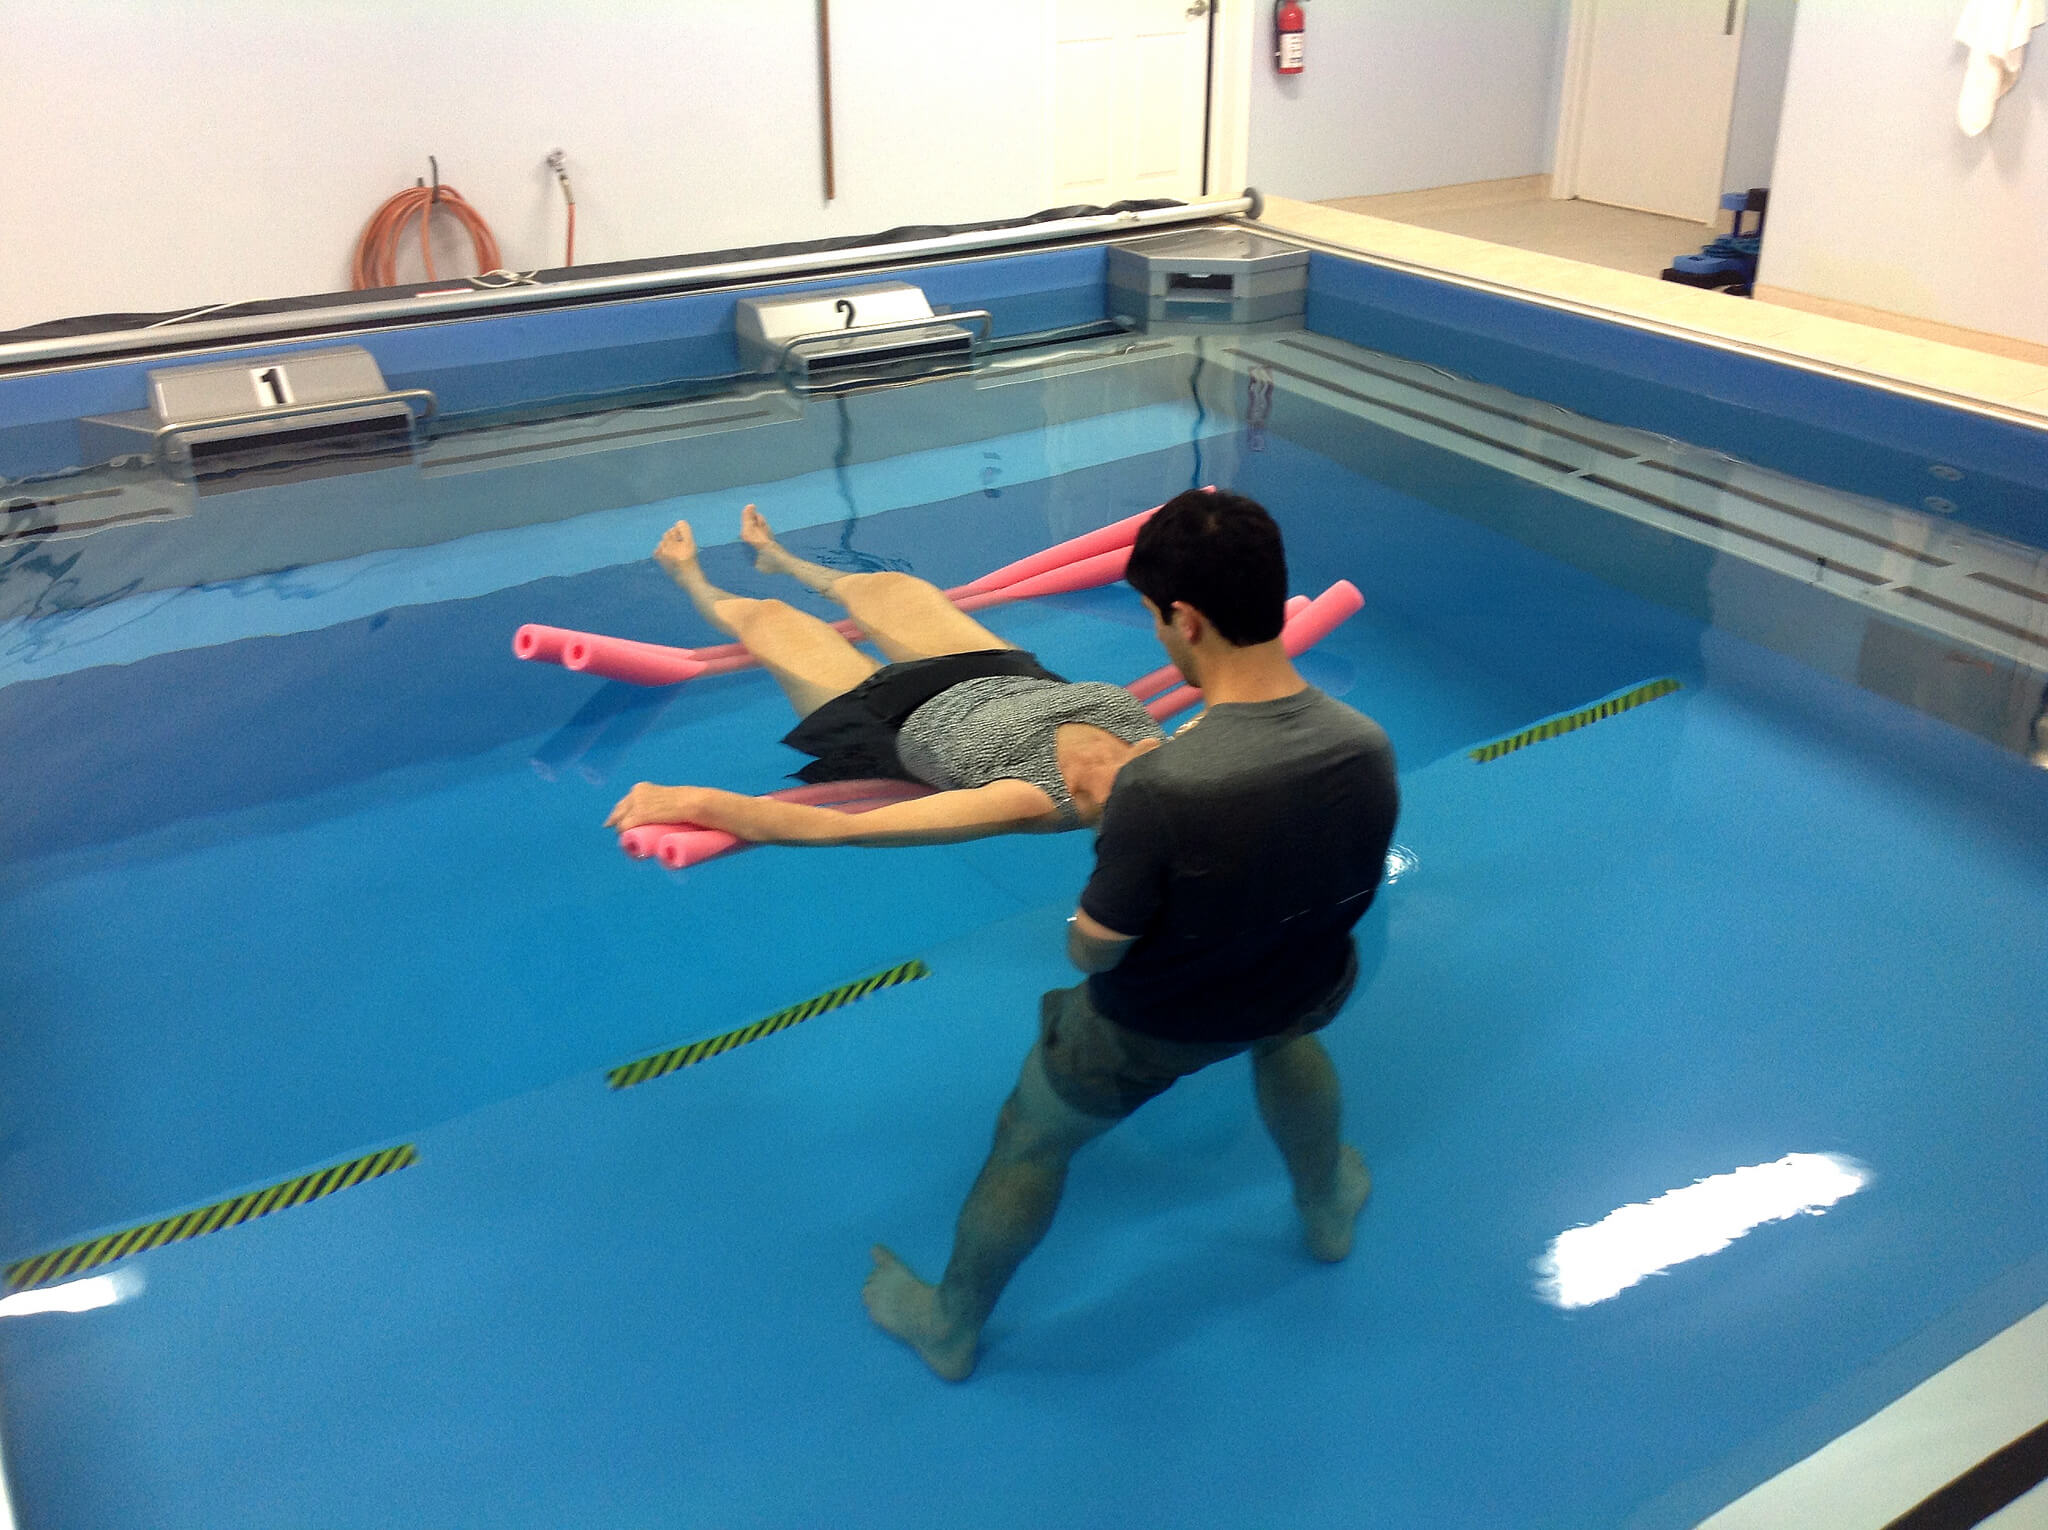 Watsu bodywork performed in a Dual Propulsion Endless Pool